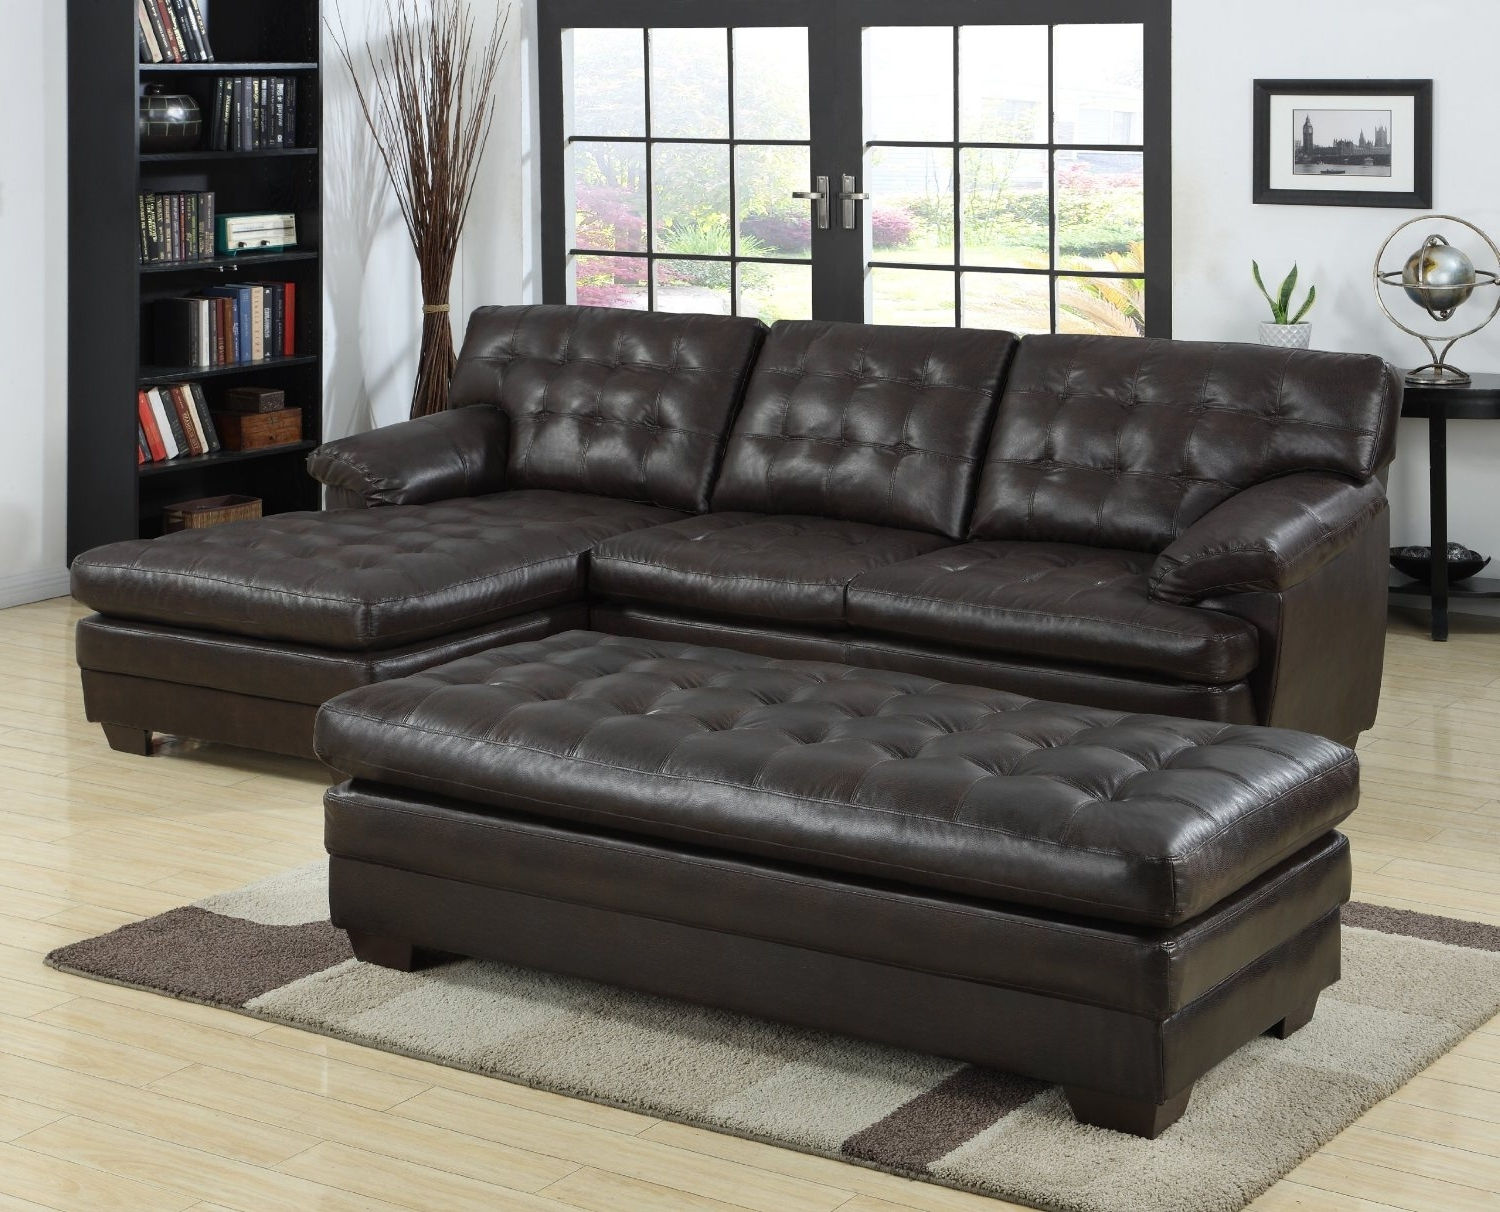 Well Known Black Tufted Leather Sectional Sofa With Chaise And Bench Seat Regarding Leather Chaise Sofas (View 15 of 15)